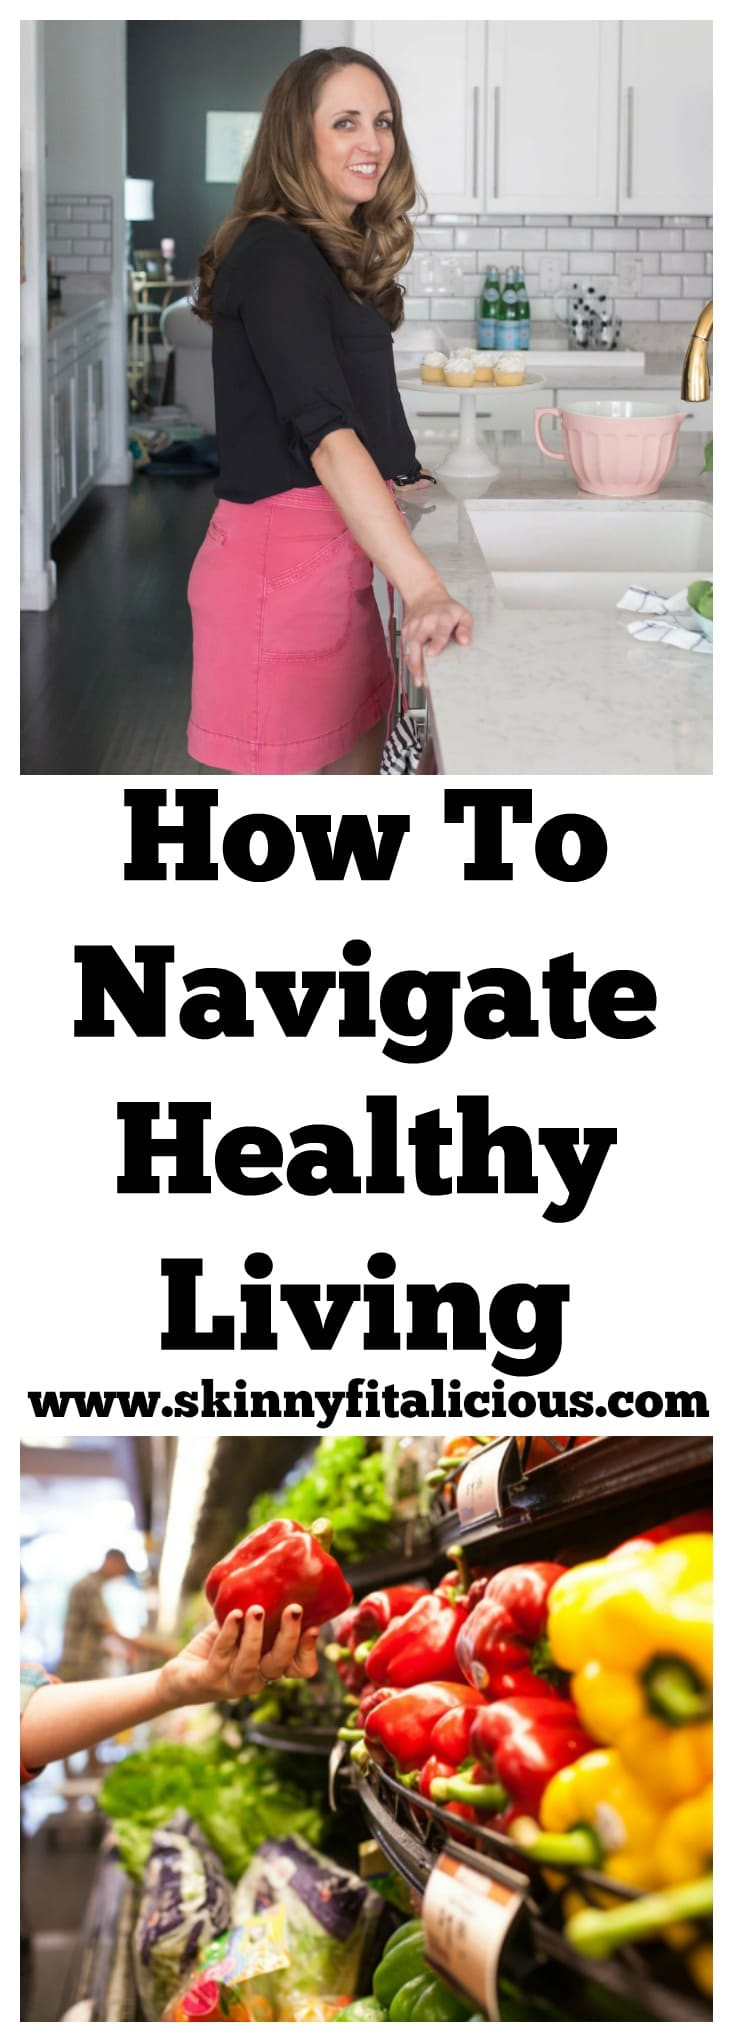 When it comes to health, fitness and weight loss, finding what works for you is key. But navigating healthy living has become very confusing.